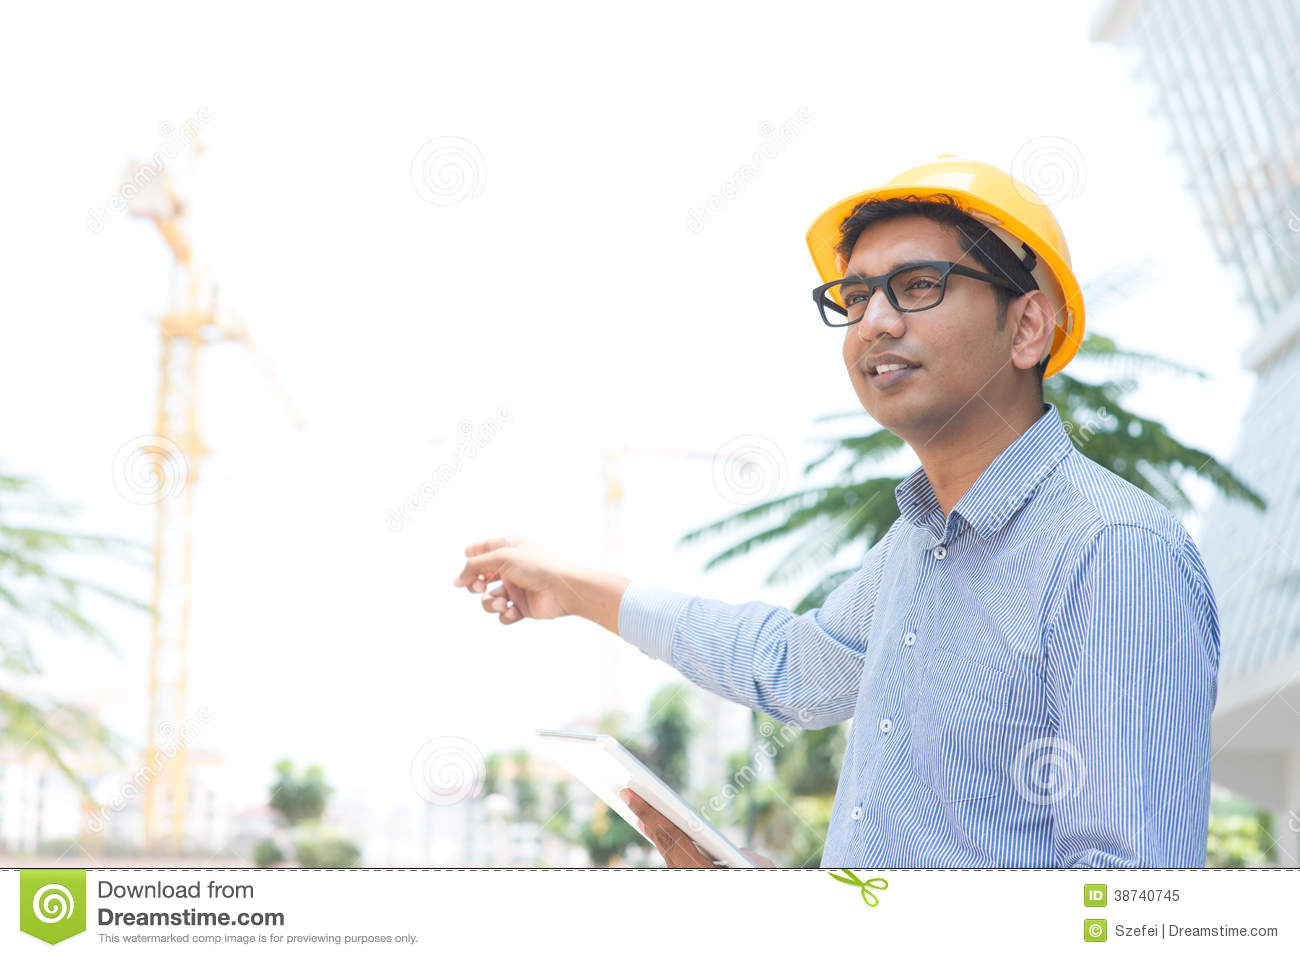 94c73bdba78 Indian Male Contractor Engineer Stock Image - Image of control